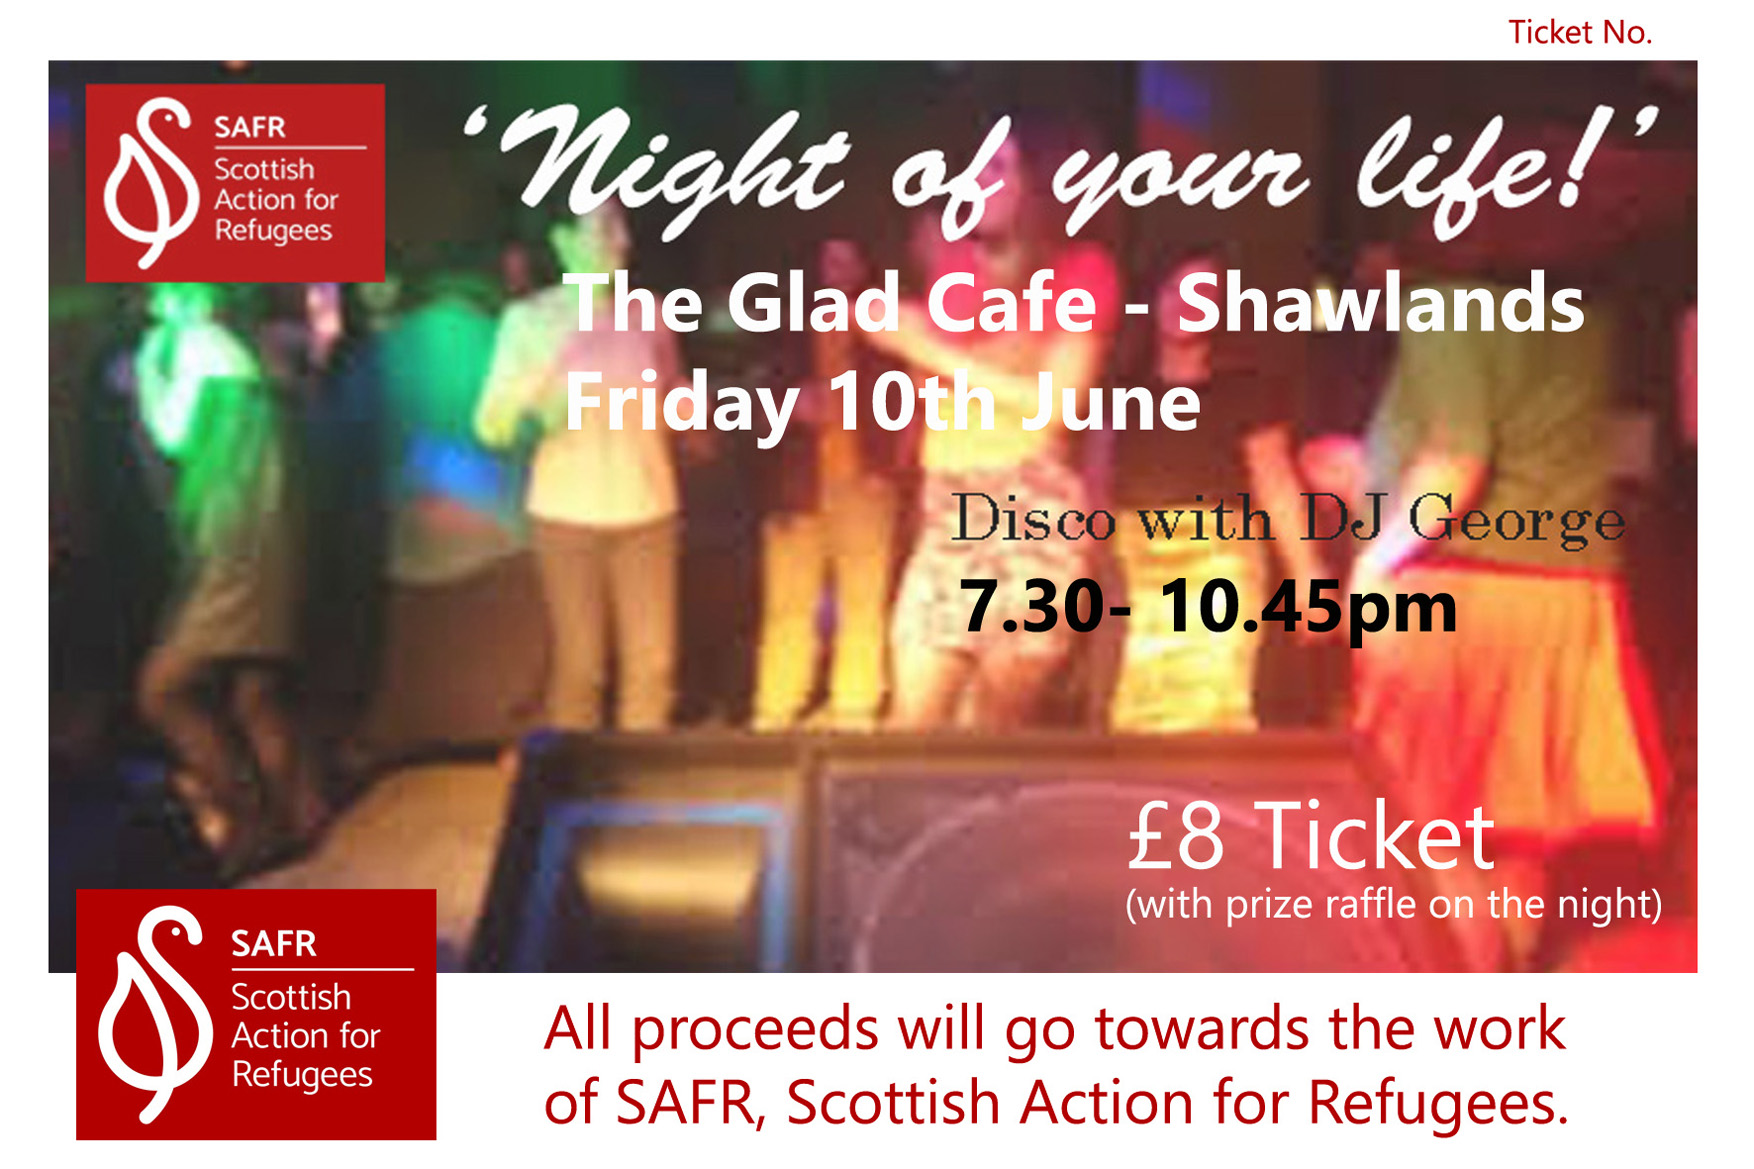 Scottish Action for Refugees: 'Night of your Life!' Disco Fundraiser with DJ George